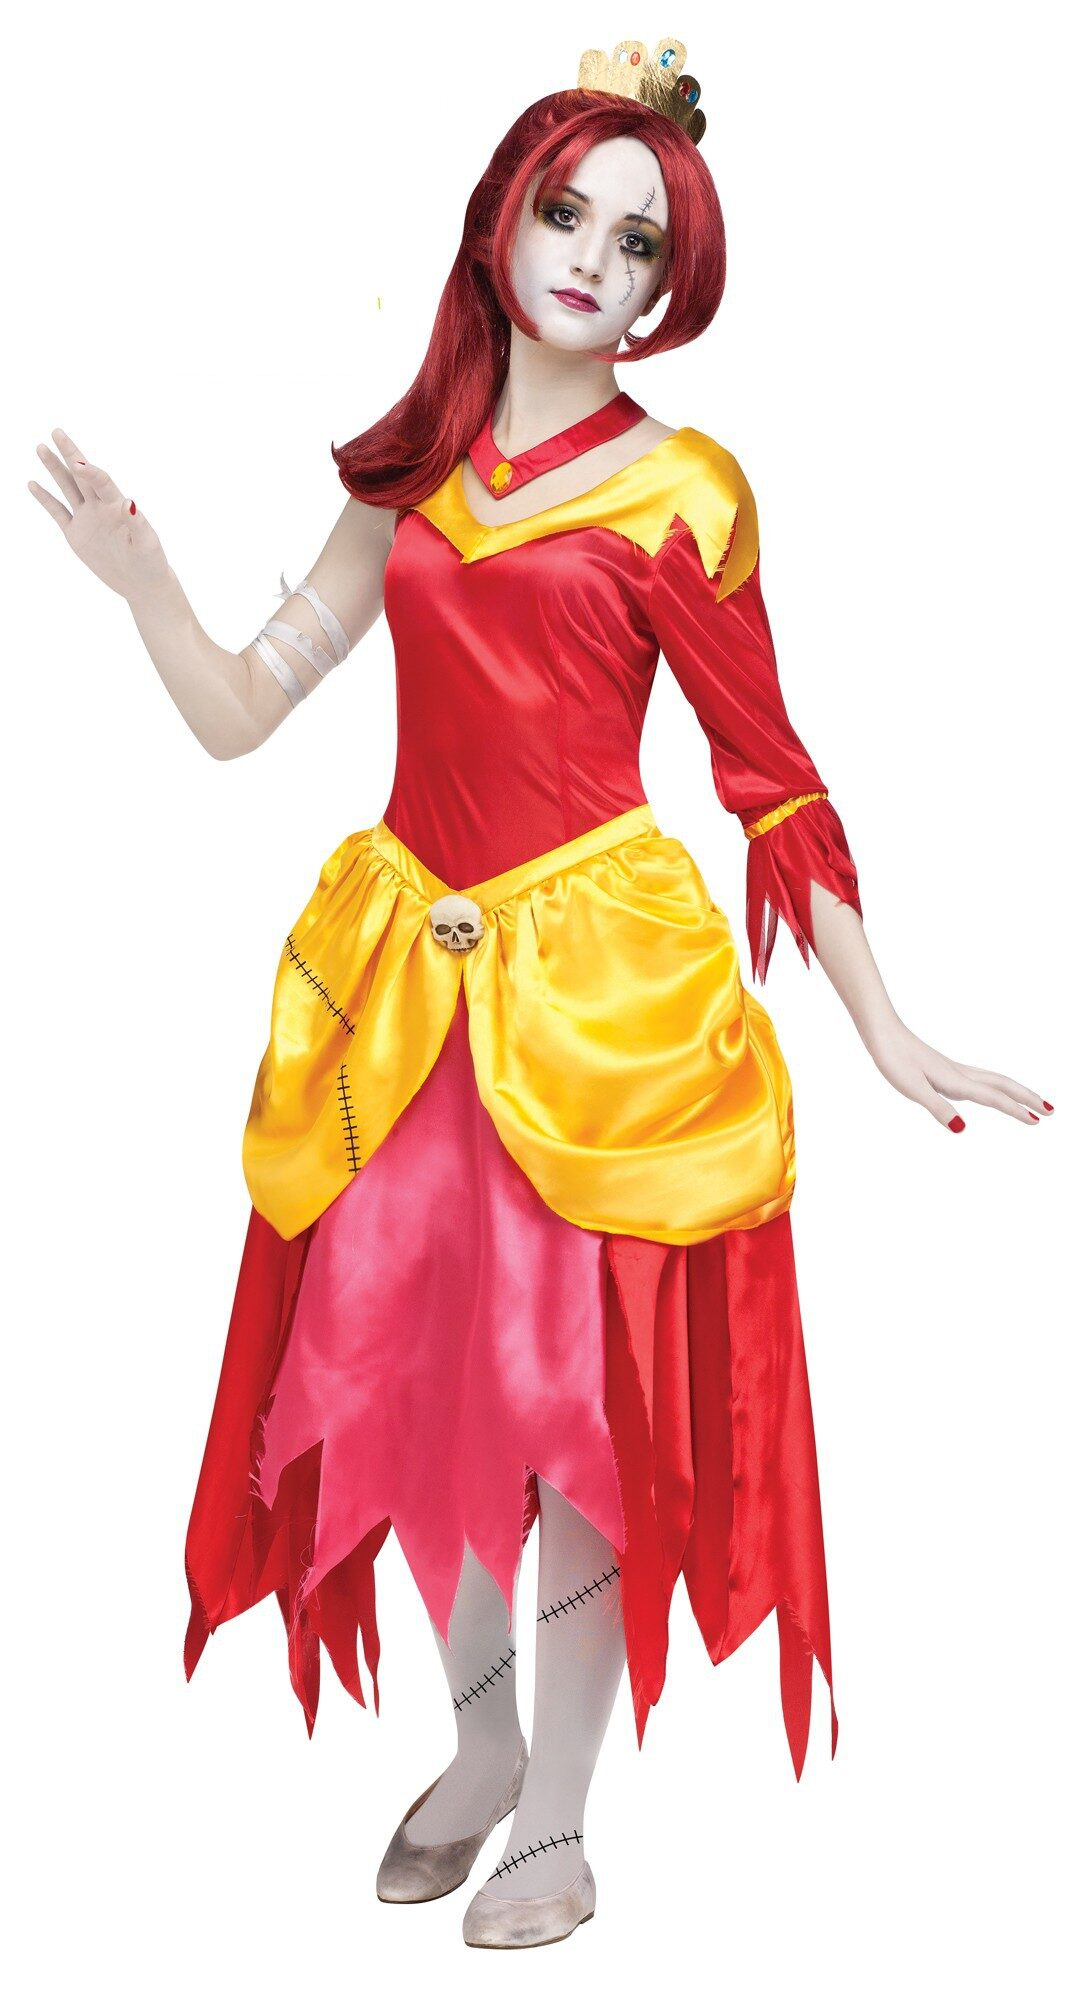 sc 1 st  Mr. Costumes & Zombie Belle Princess Kids Costume - Mr. Costumes